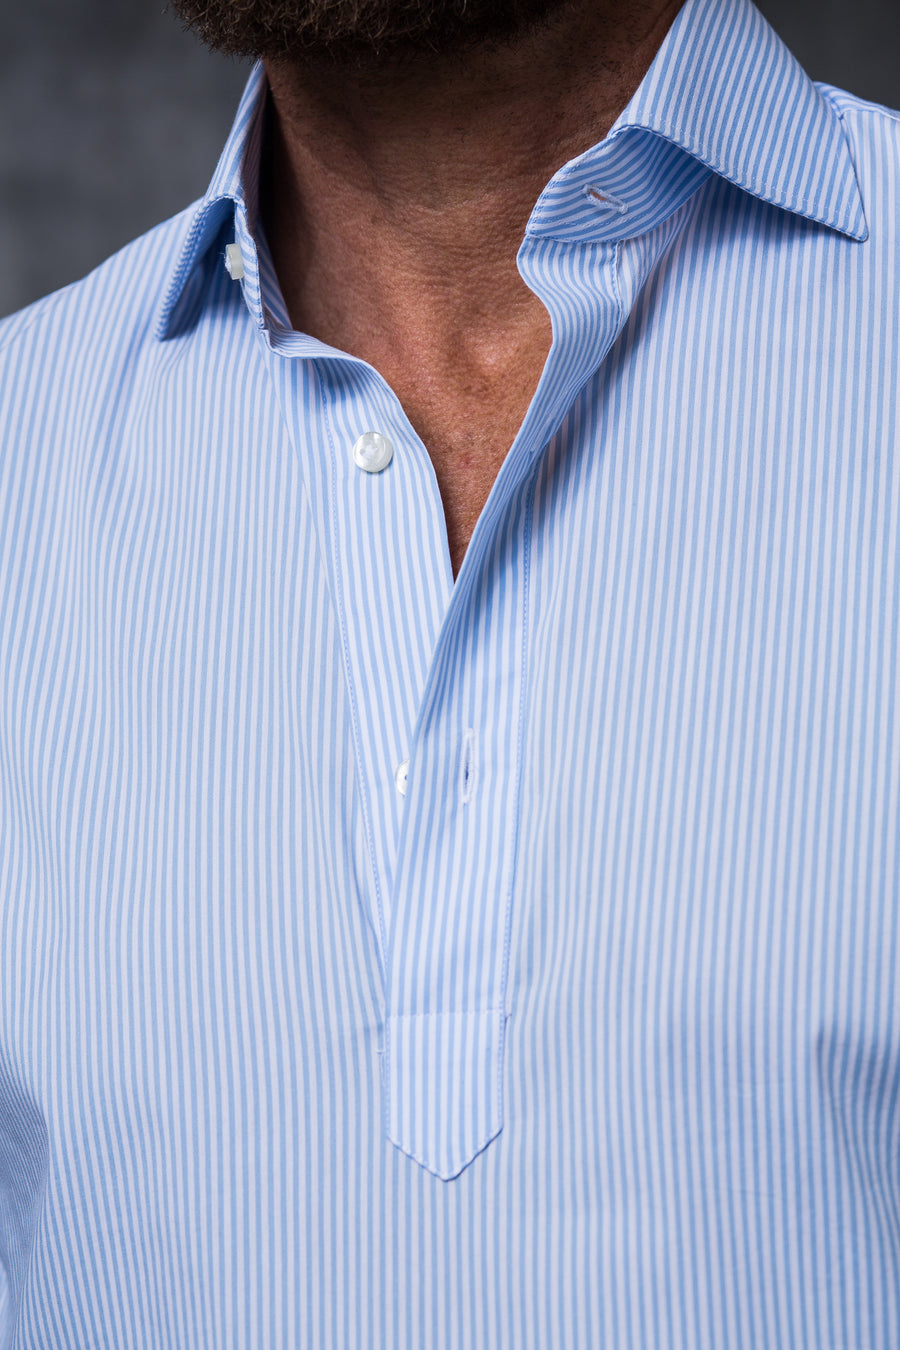 LIGHT BLUE STRIPED POPOVER SHIRT - Made in Italy